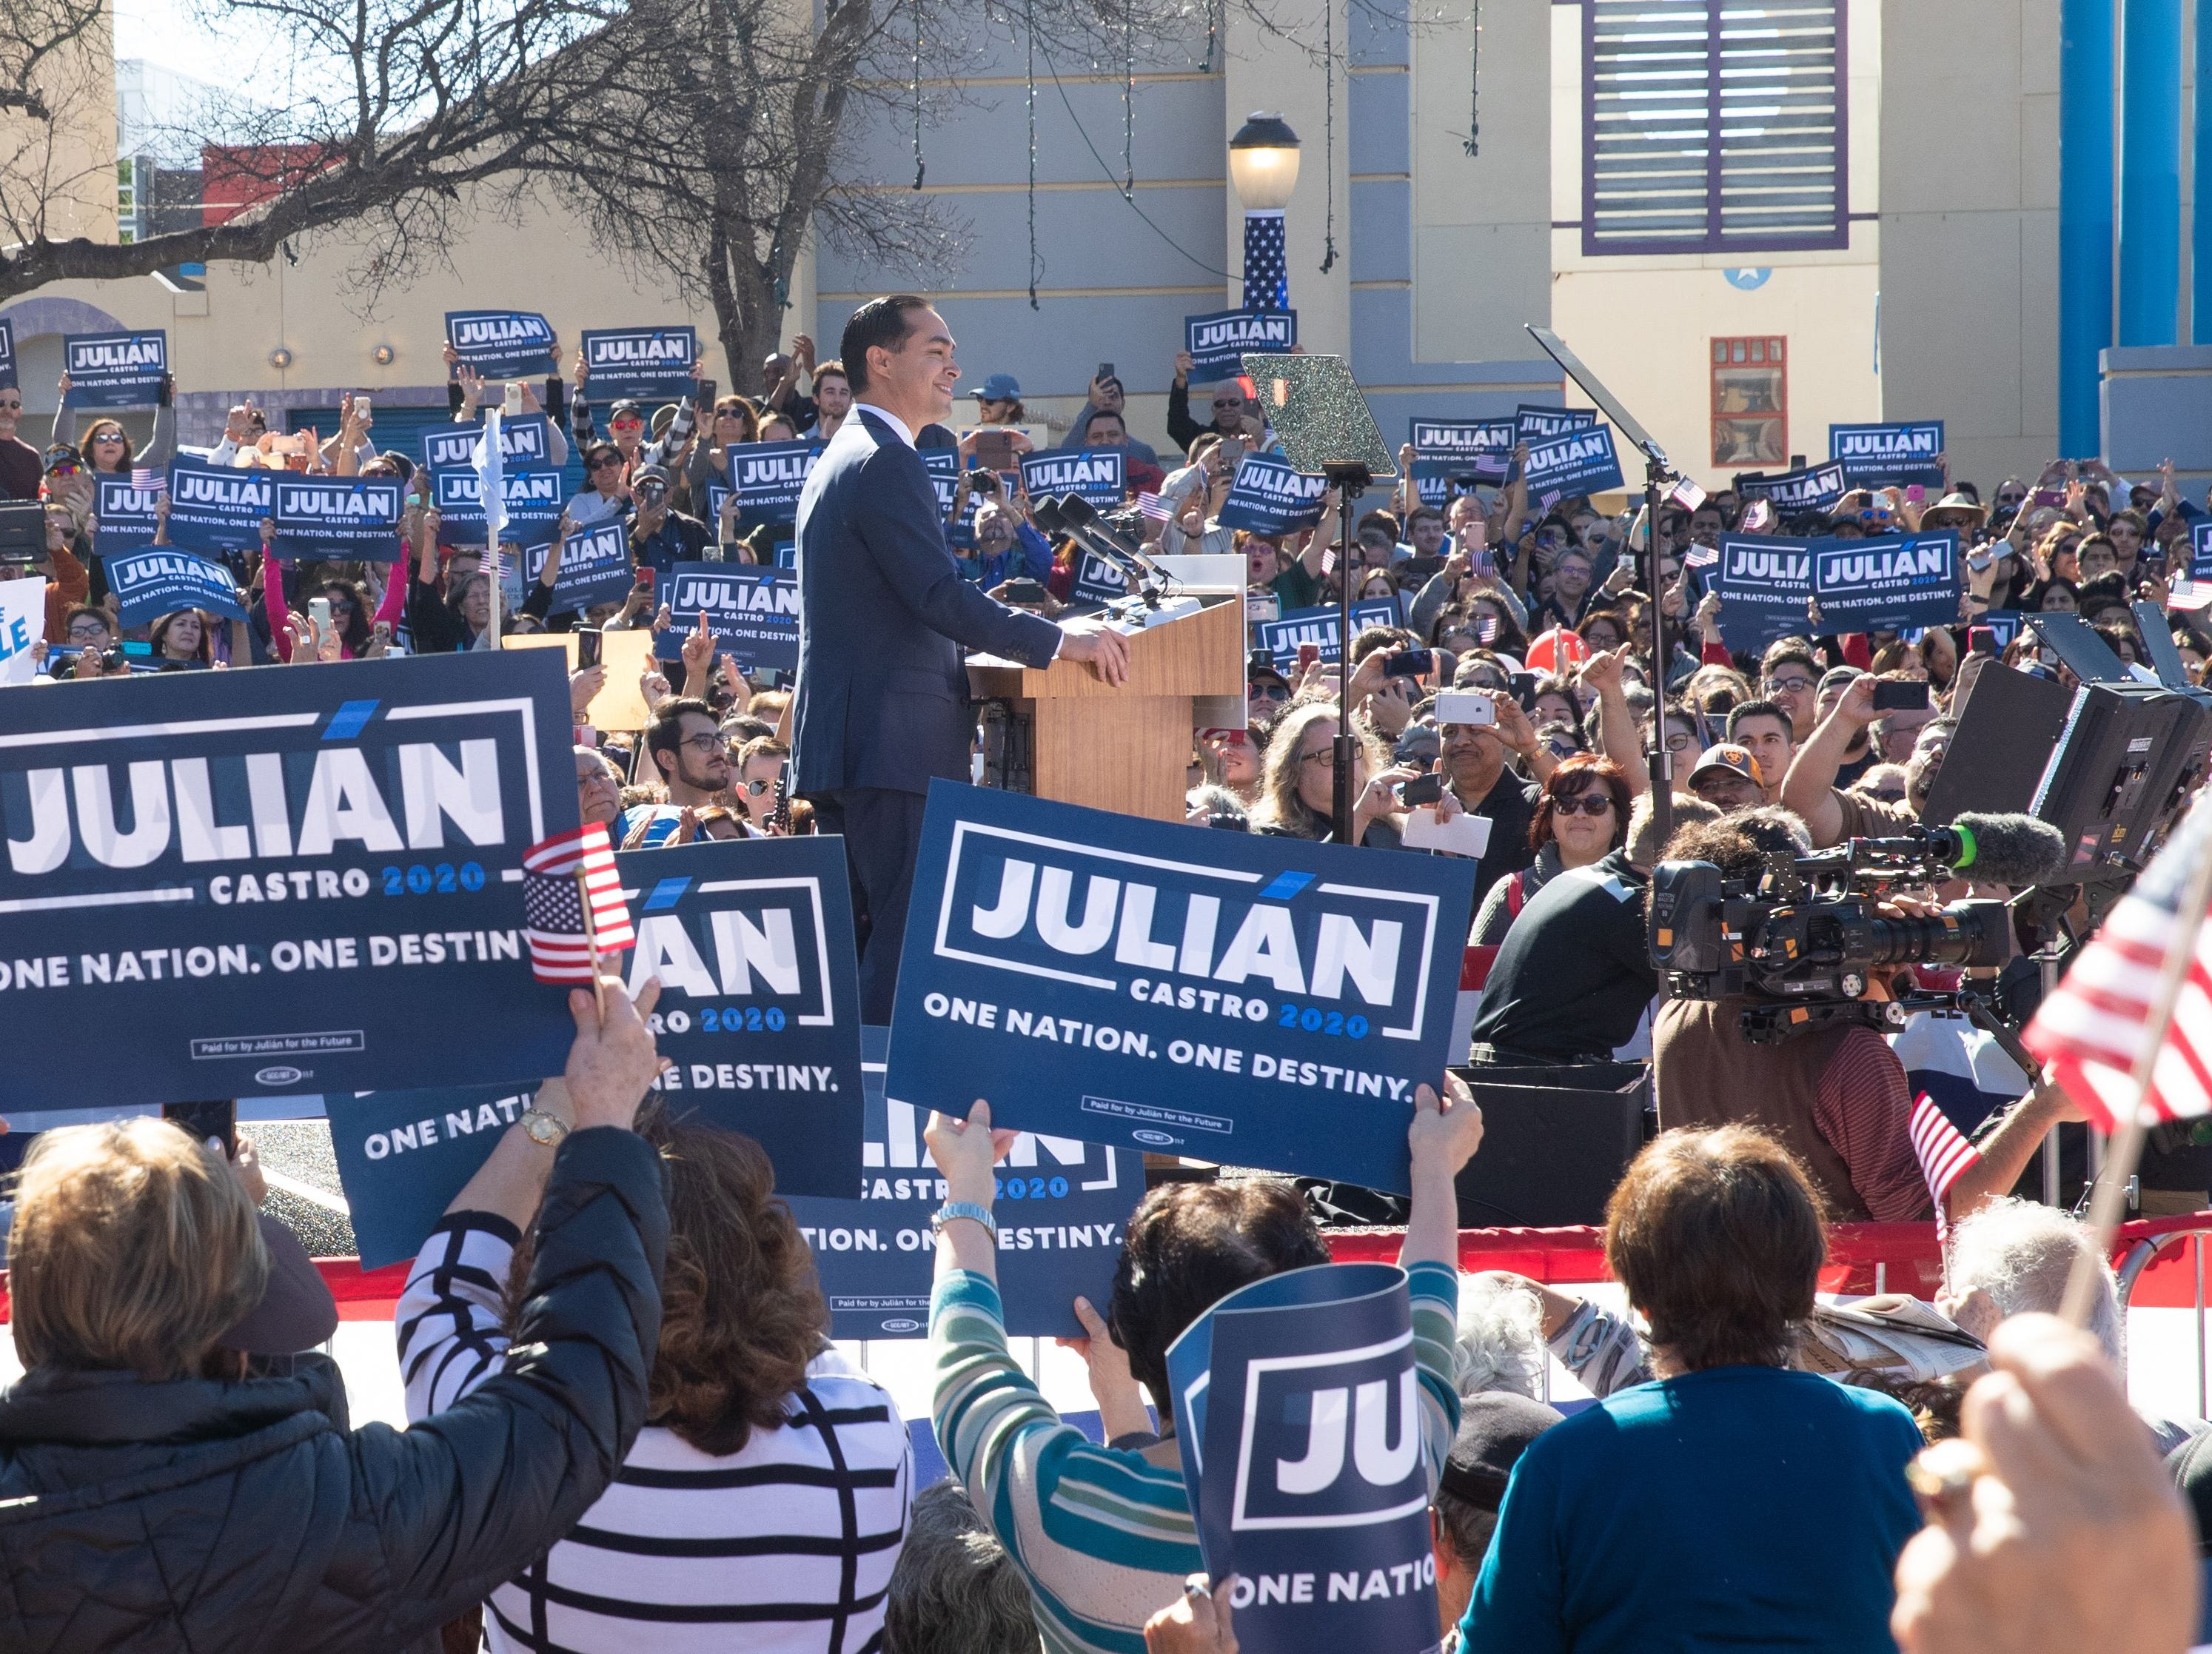 Former United States Secretary of Housing and Urban Development Julian Castro announces his candidacy for President of the United States in his hometown of San Antonio, Texas on Jan. 12, 2019.